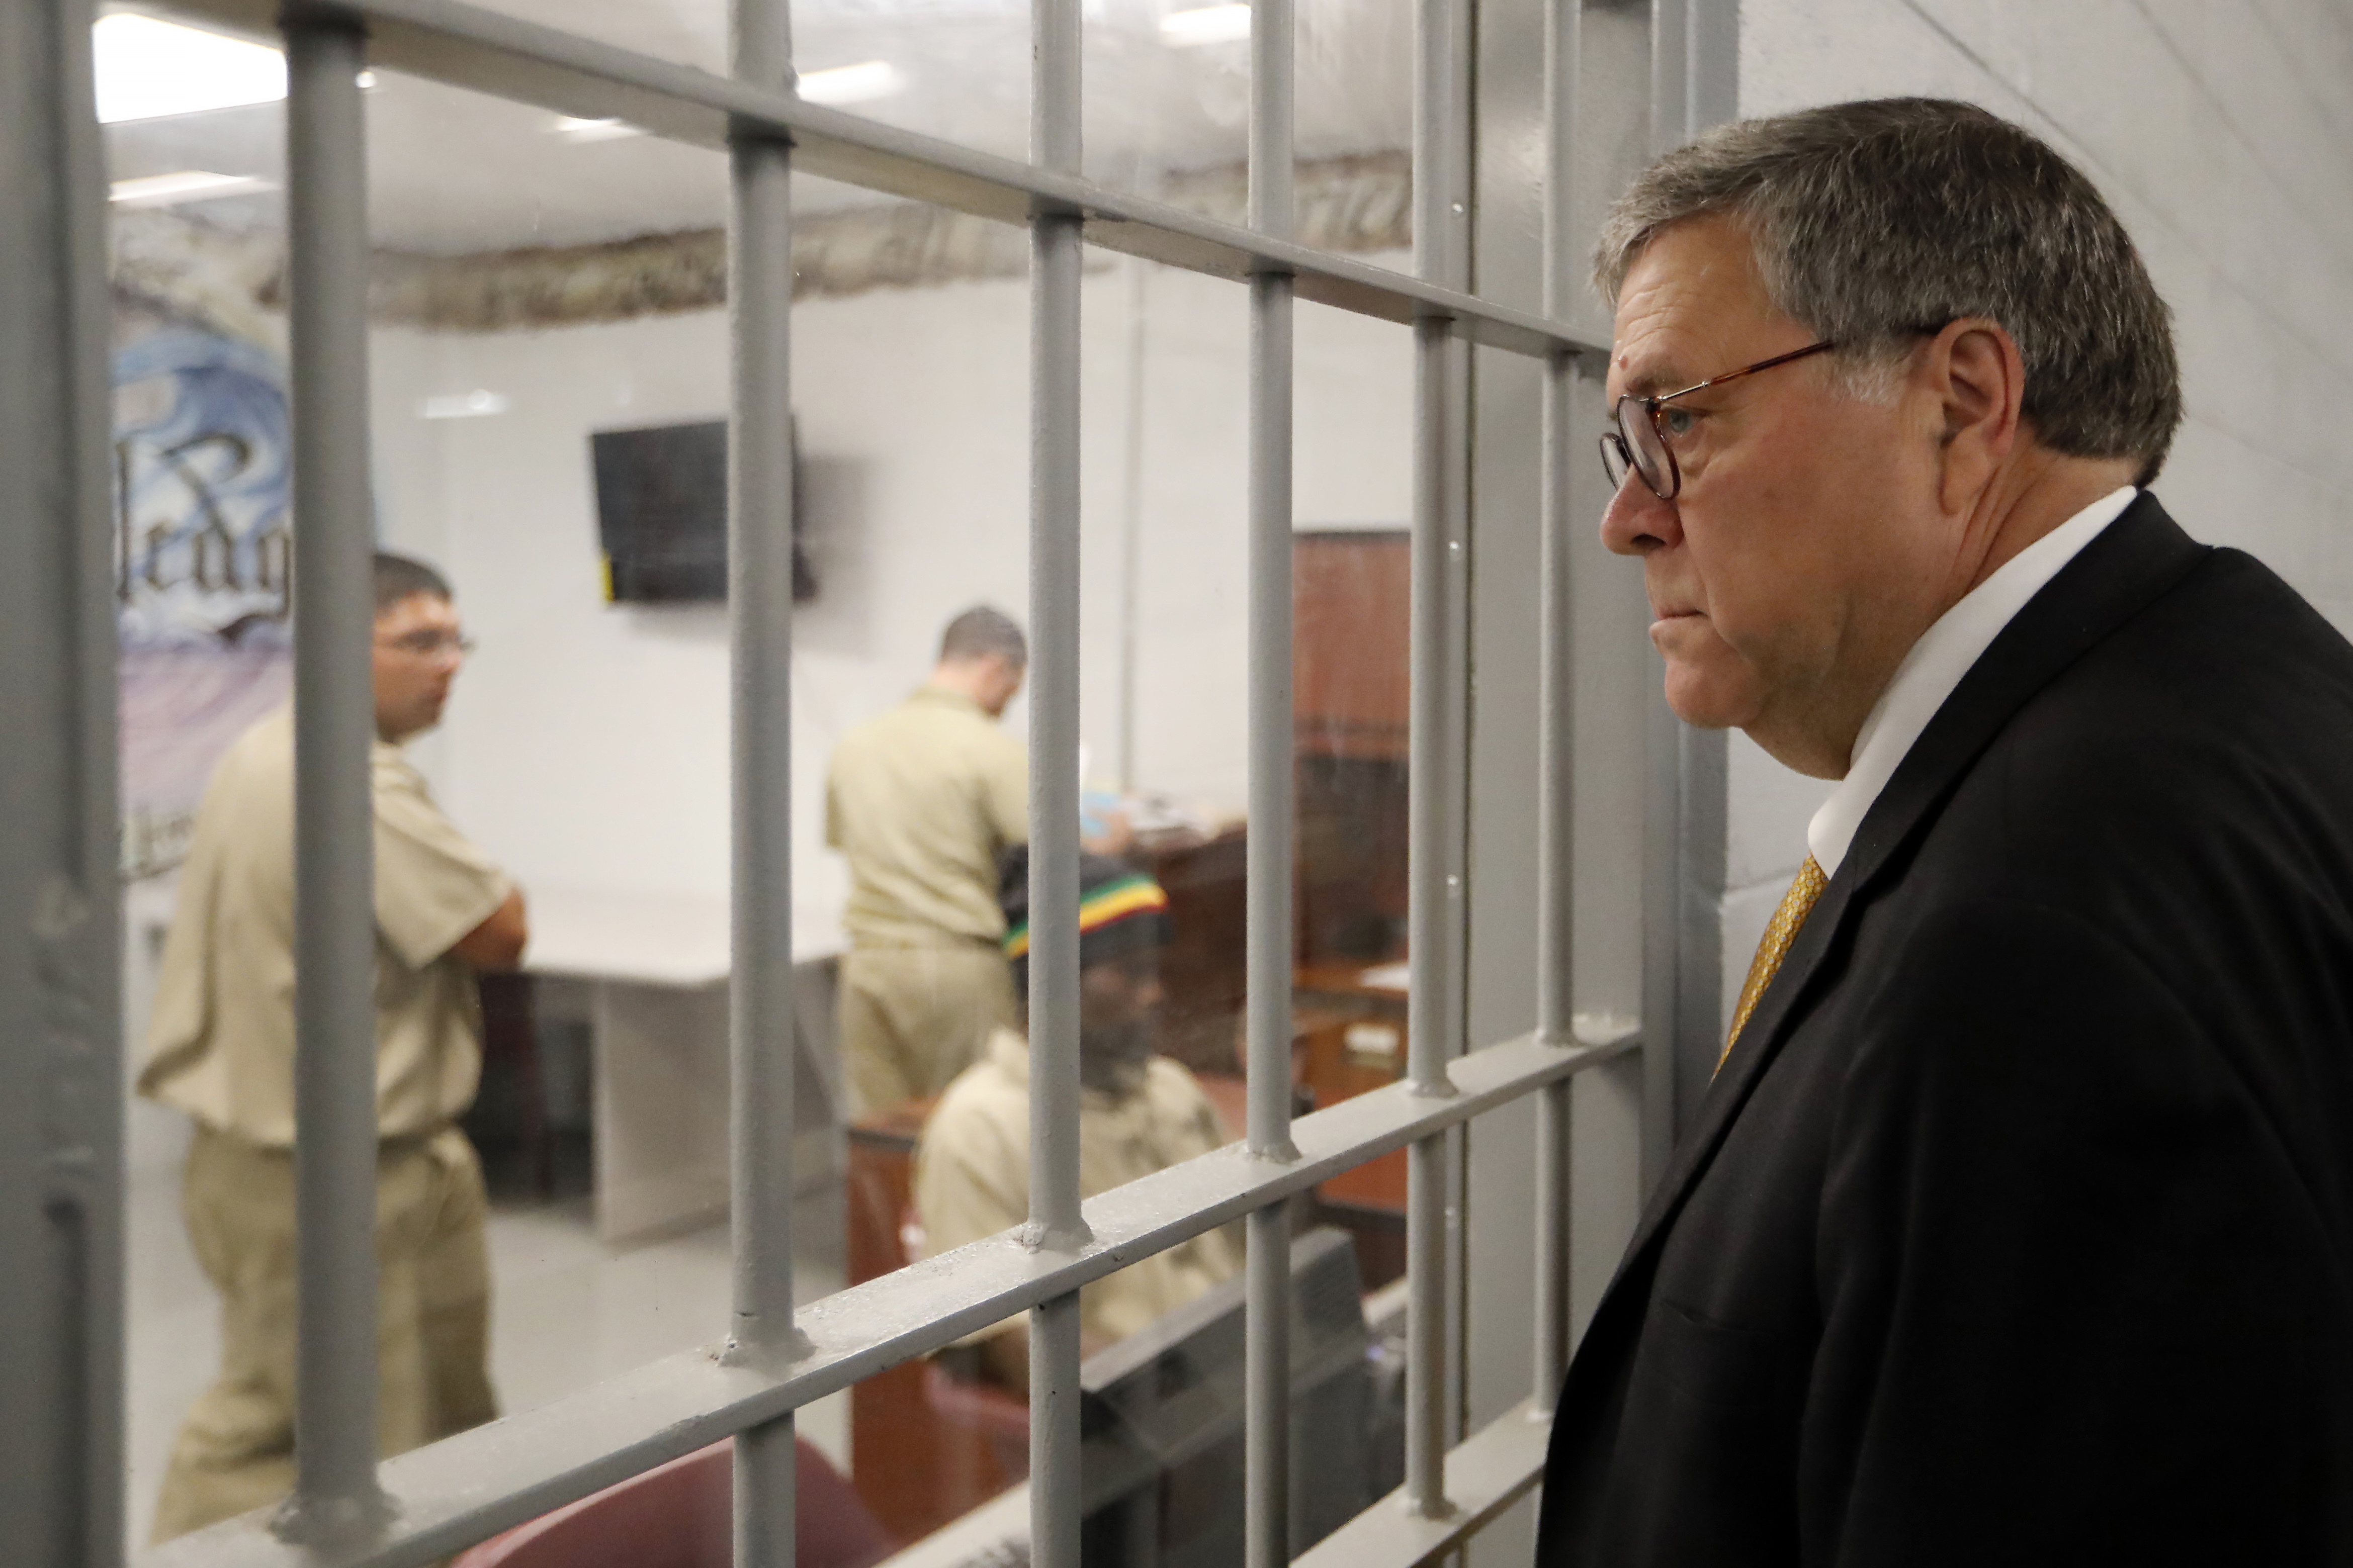 Attorney General William Barr watches as inmates work in a computer class during a tour of a federal prison in Edgefield, S.C. on July 8, 2019.